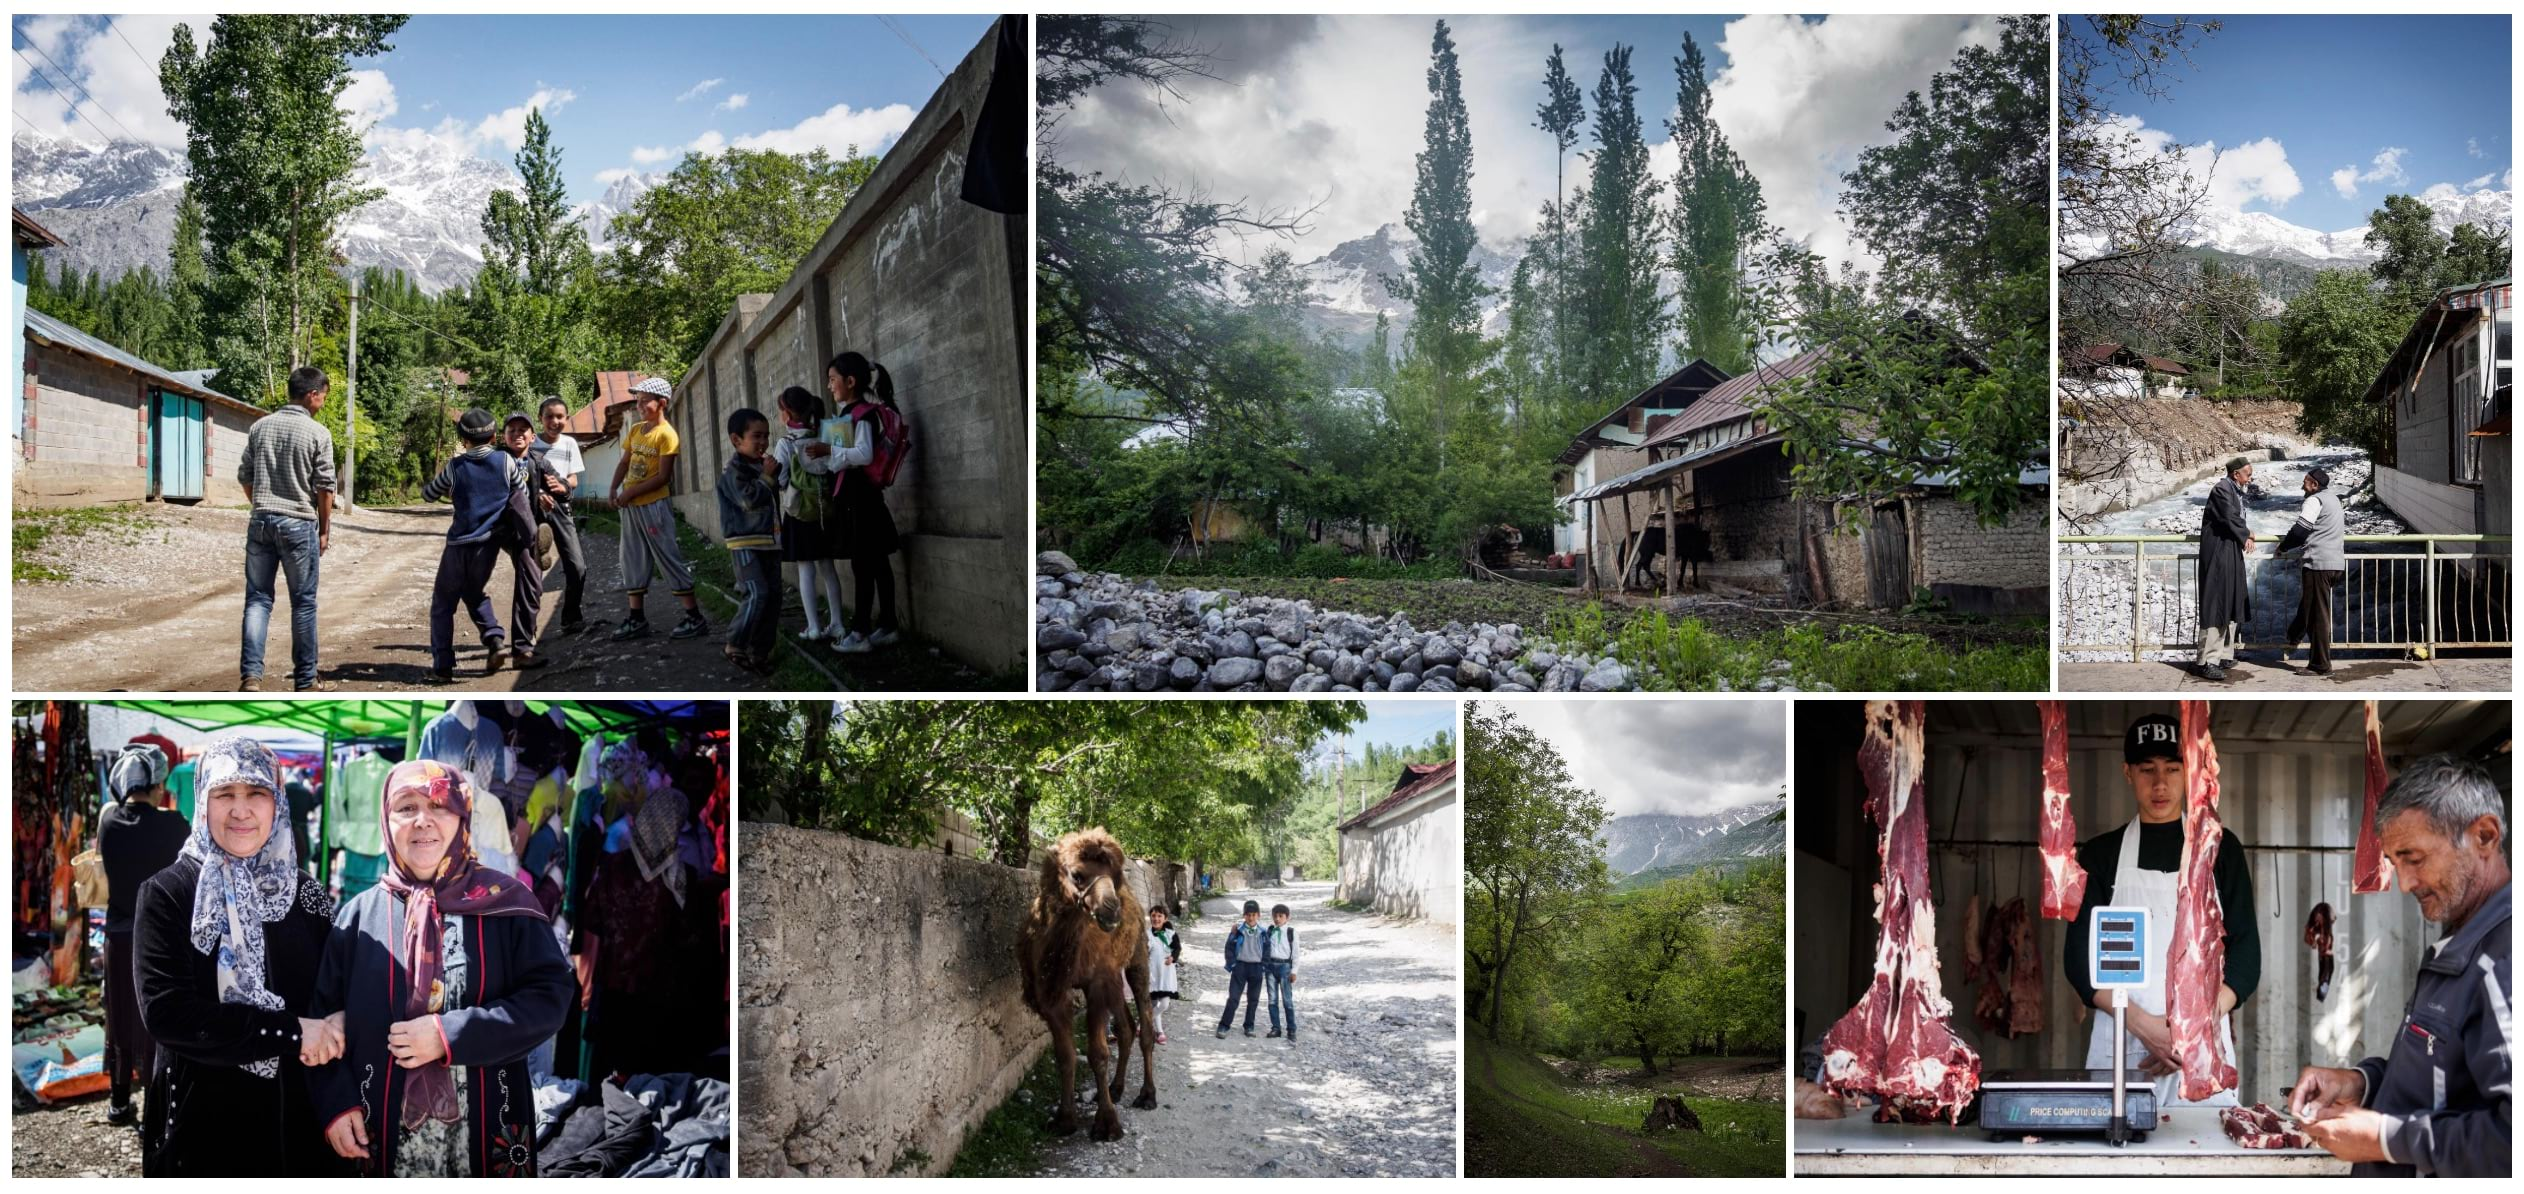 A collage of images of Kyrgyzstan